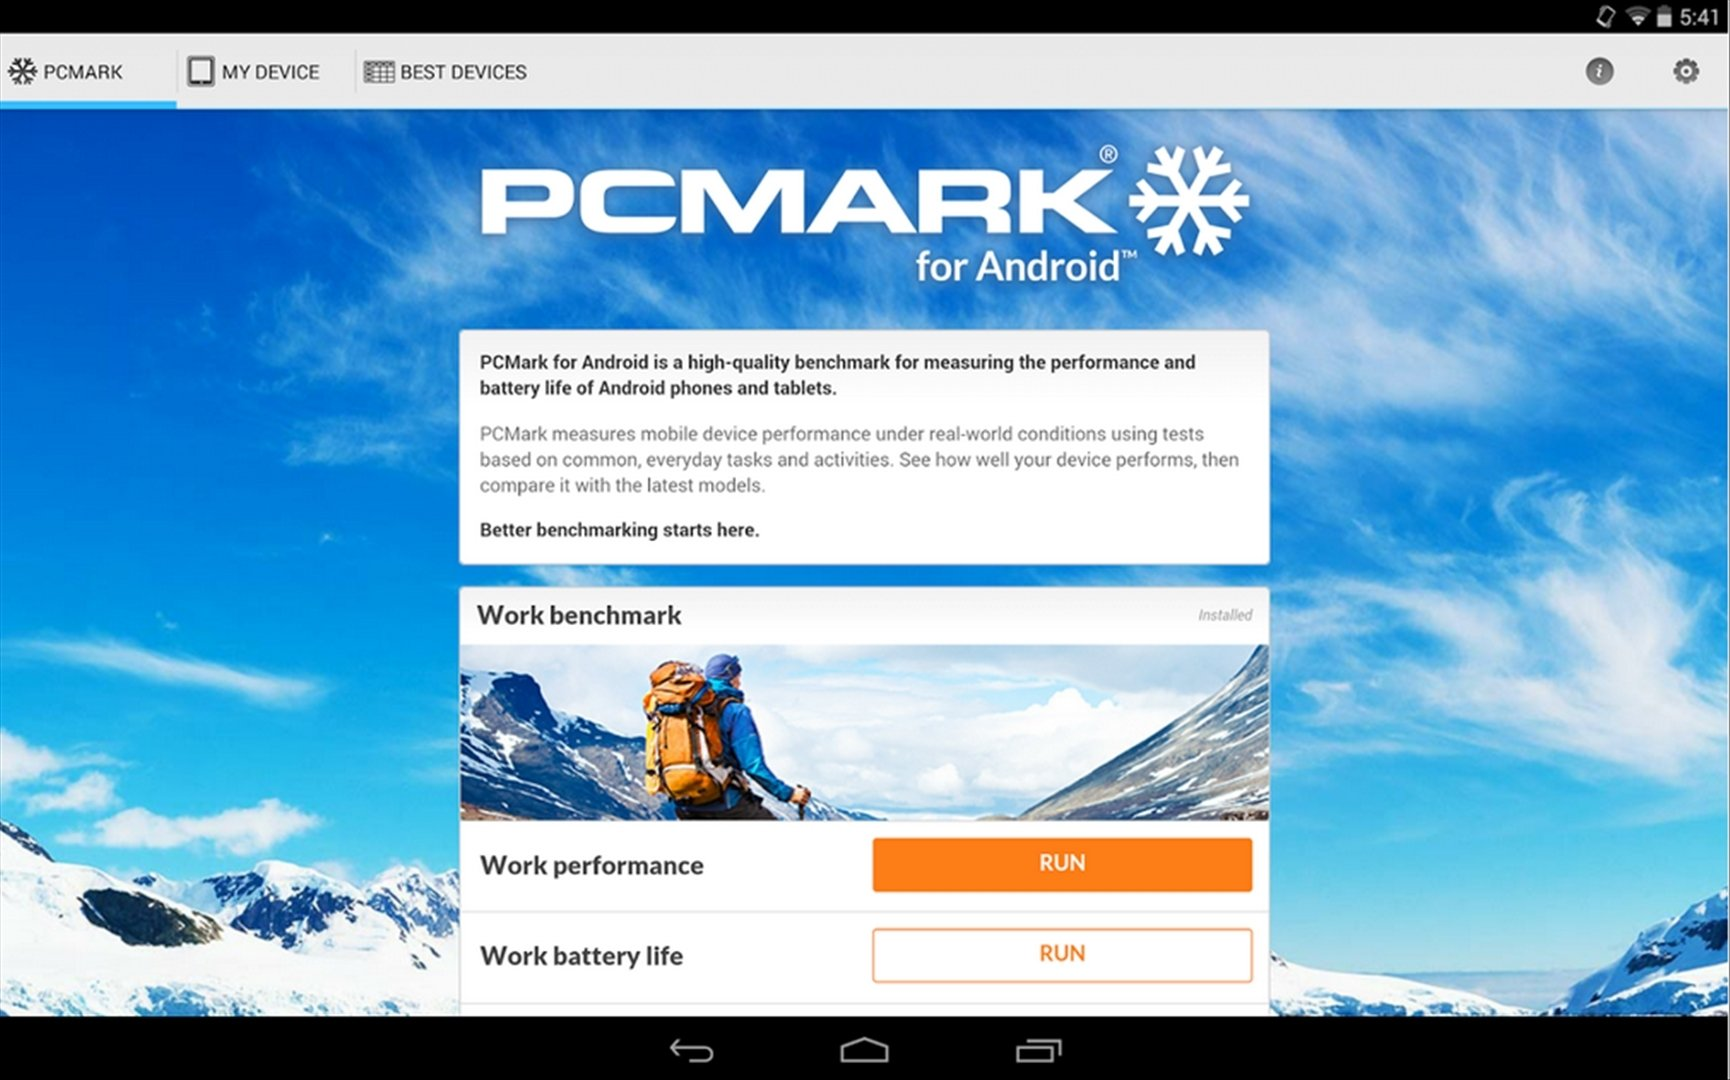 PCMark Android image 8